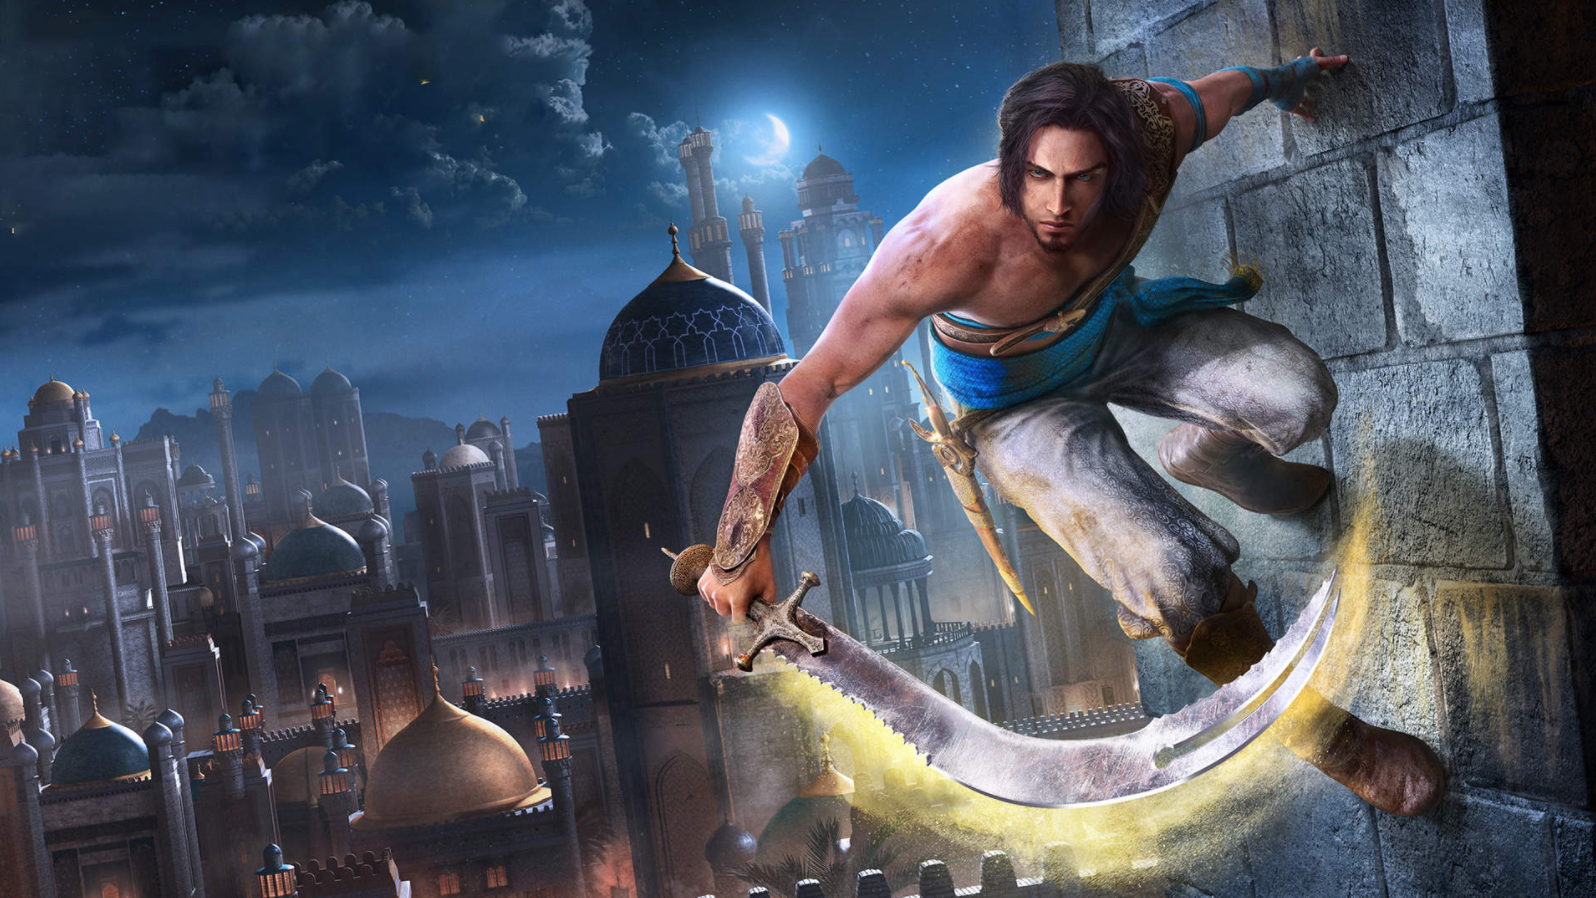 prince-of-persia-the-sands-of-time-remake-for-ps4-delayed-indefinitely